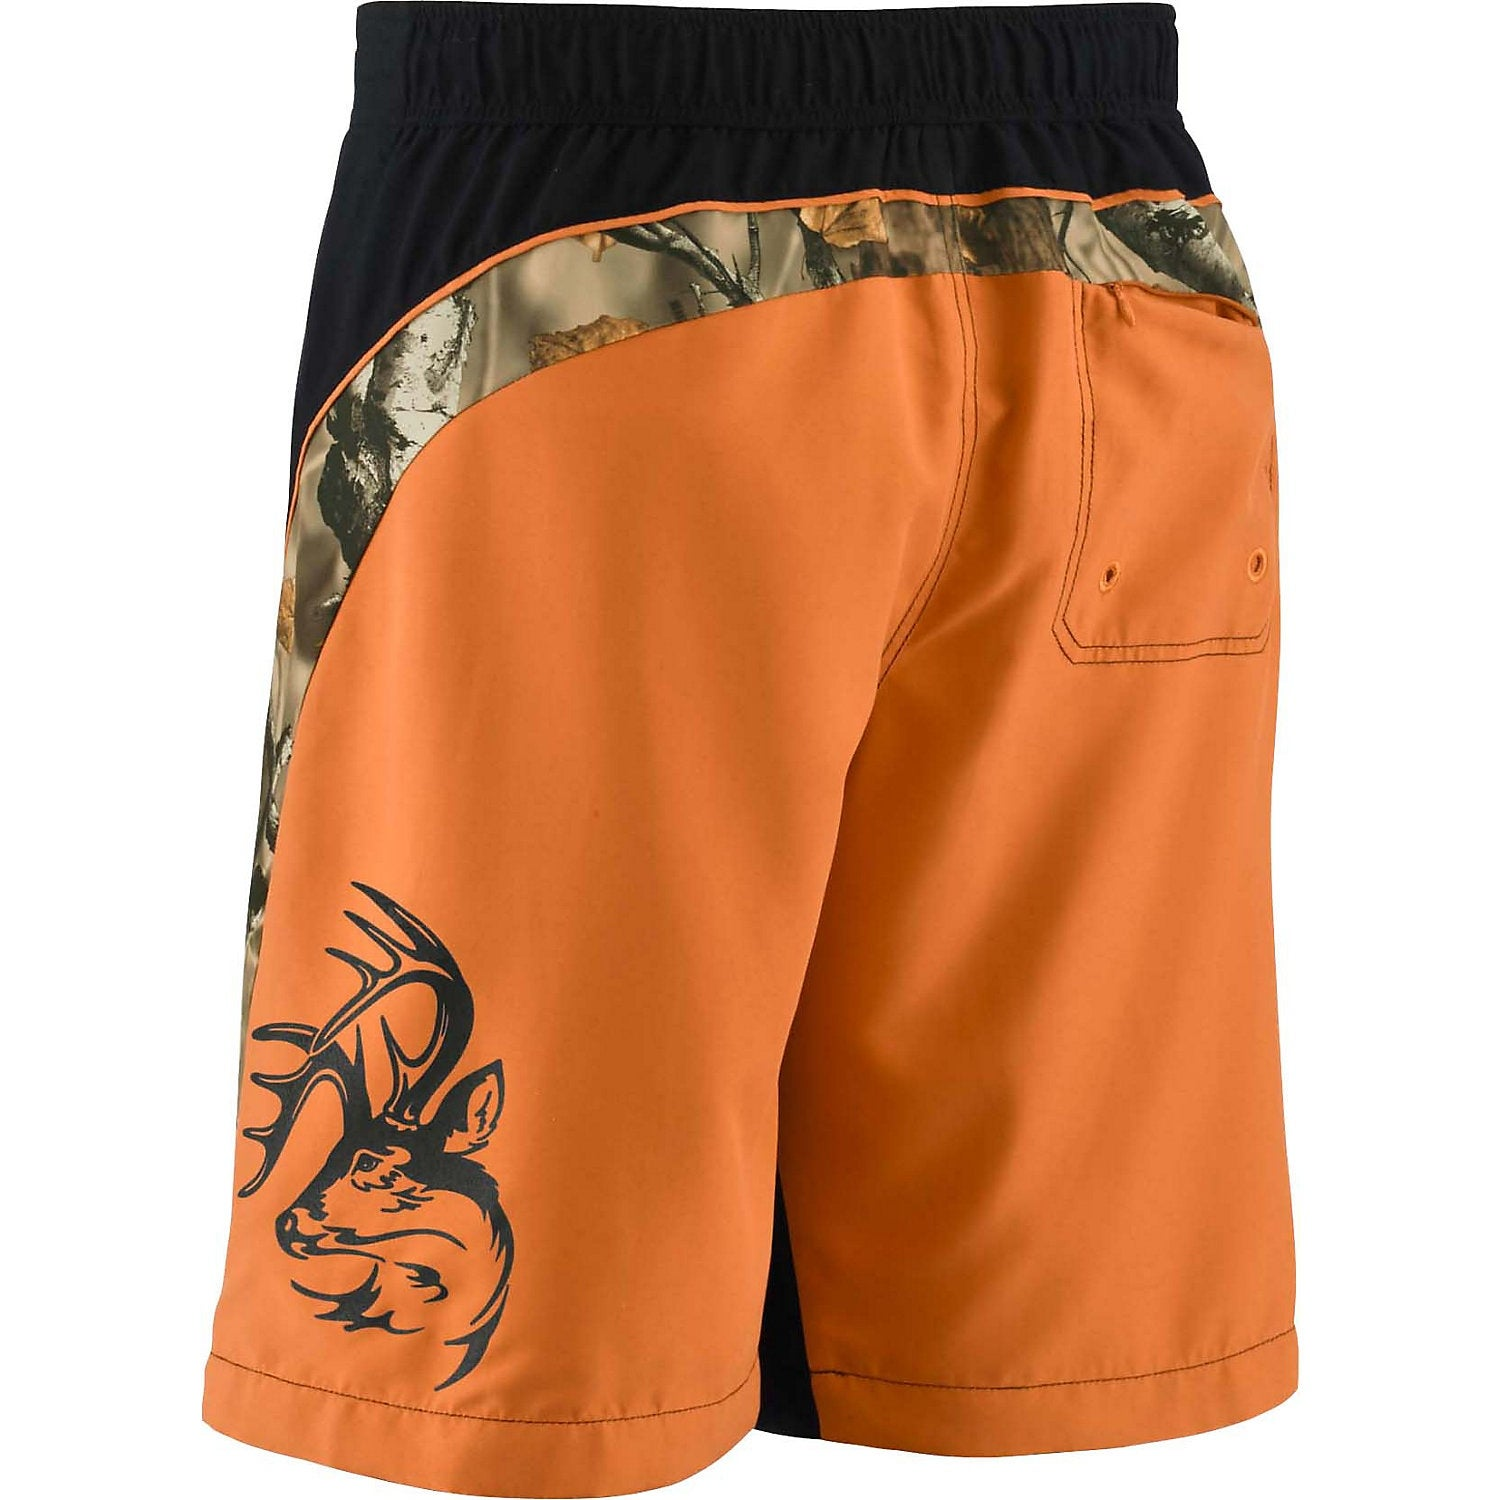 7e0fe6b351 Shop Legendary Whitetails Men's Big Game Camo Shoreline Swim Trunks - Free  Shipping On Orders Over $45 - Overstock - 14431677